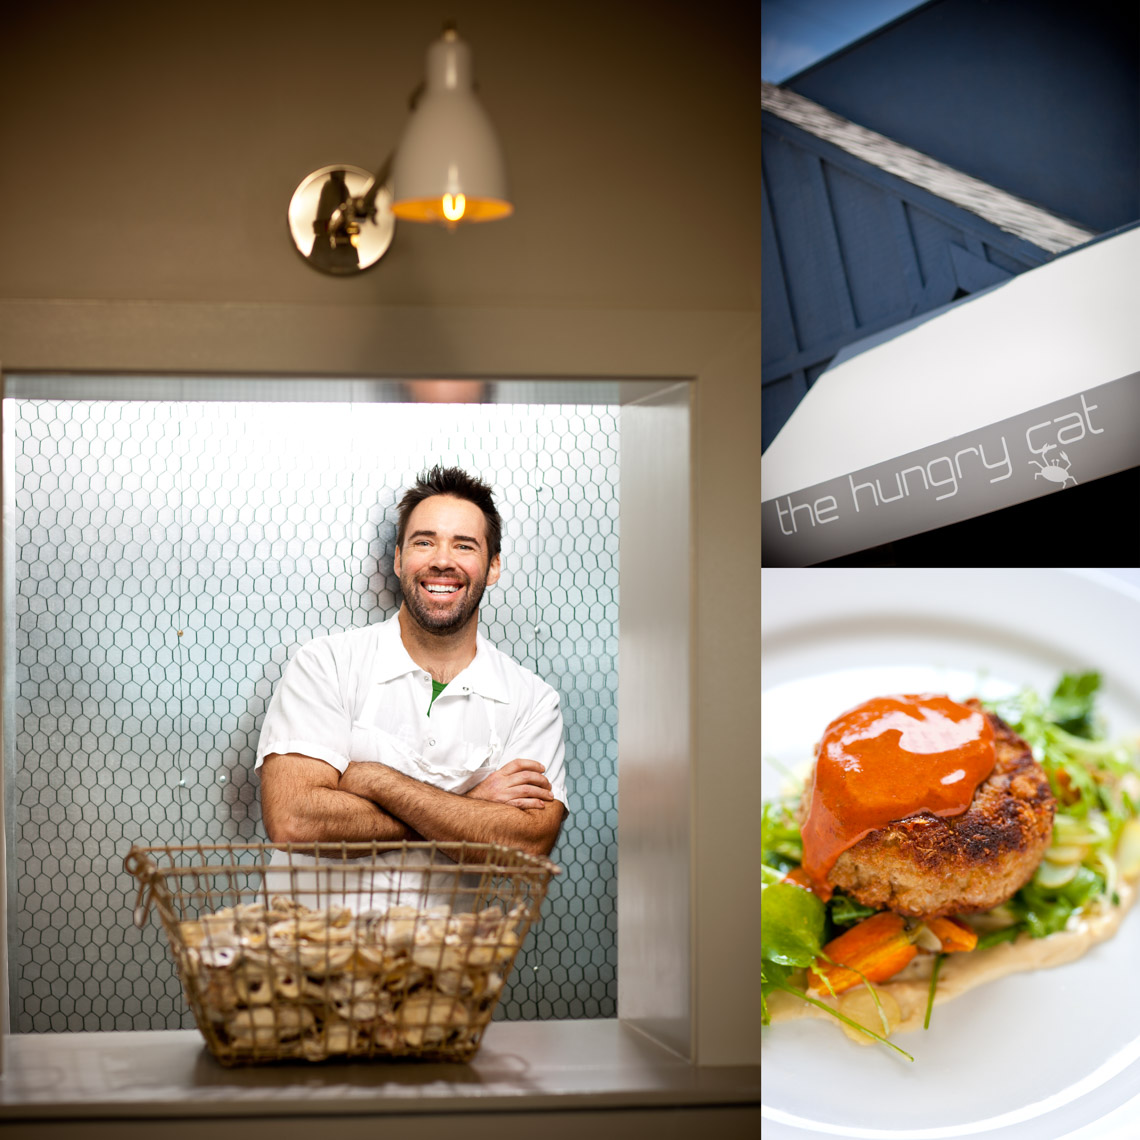 Los Angeles Photographer | Dana Hursey Photography | Top Chef Photography | David Lenz - The Hungry Cat